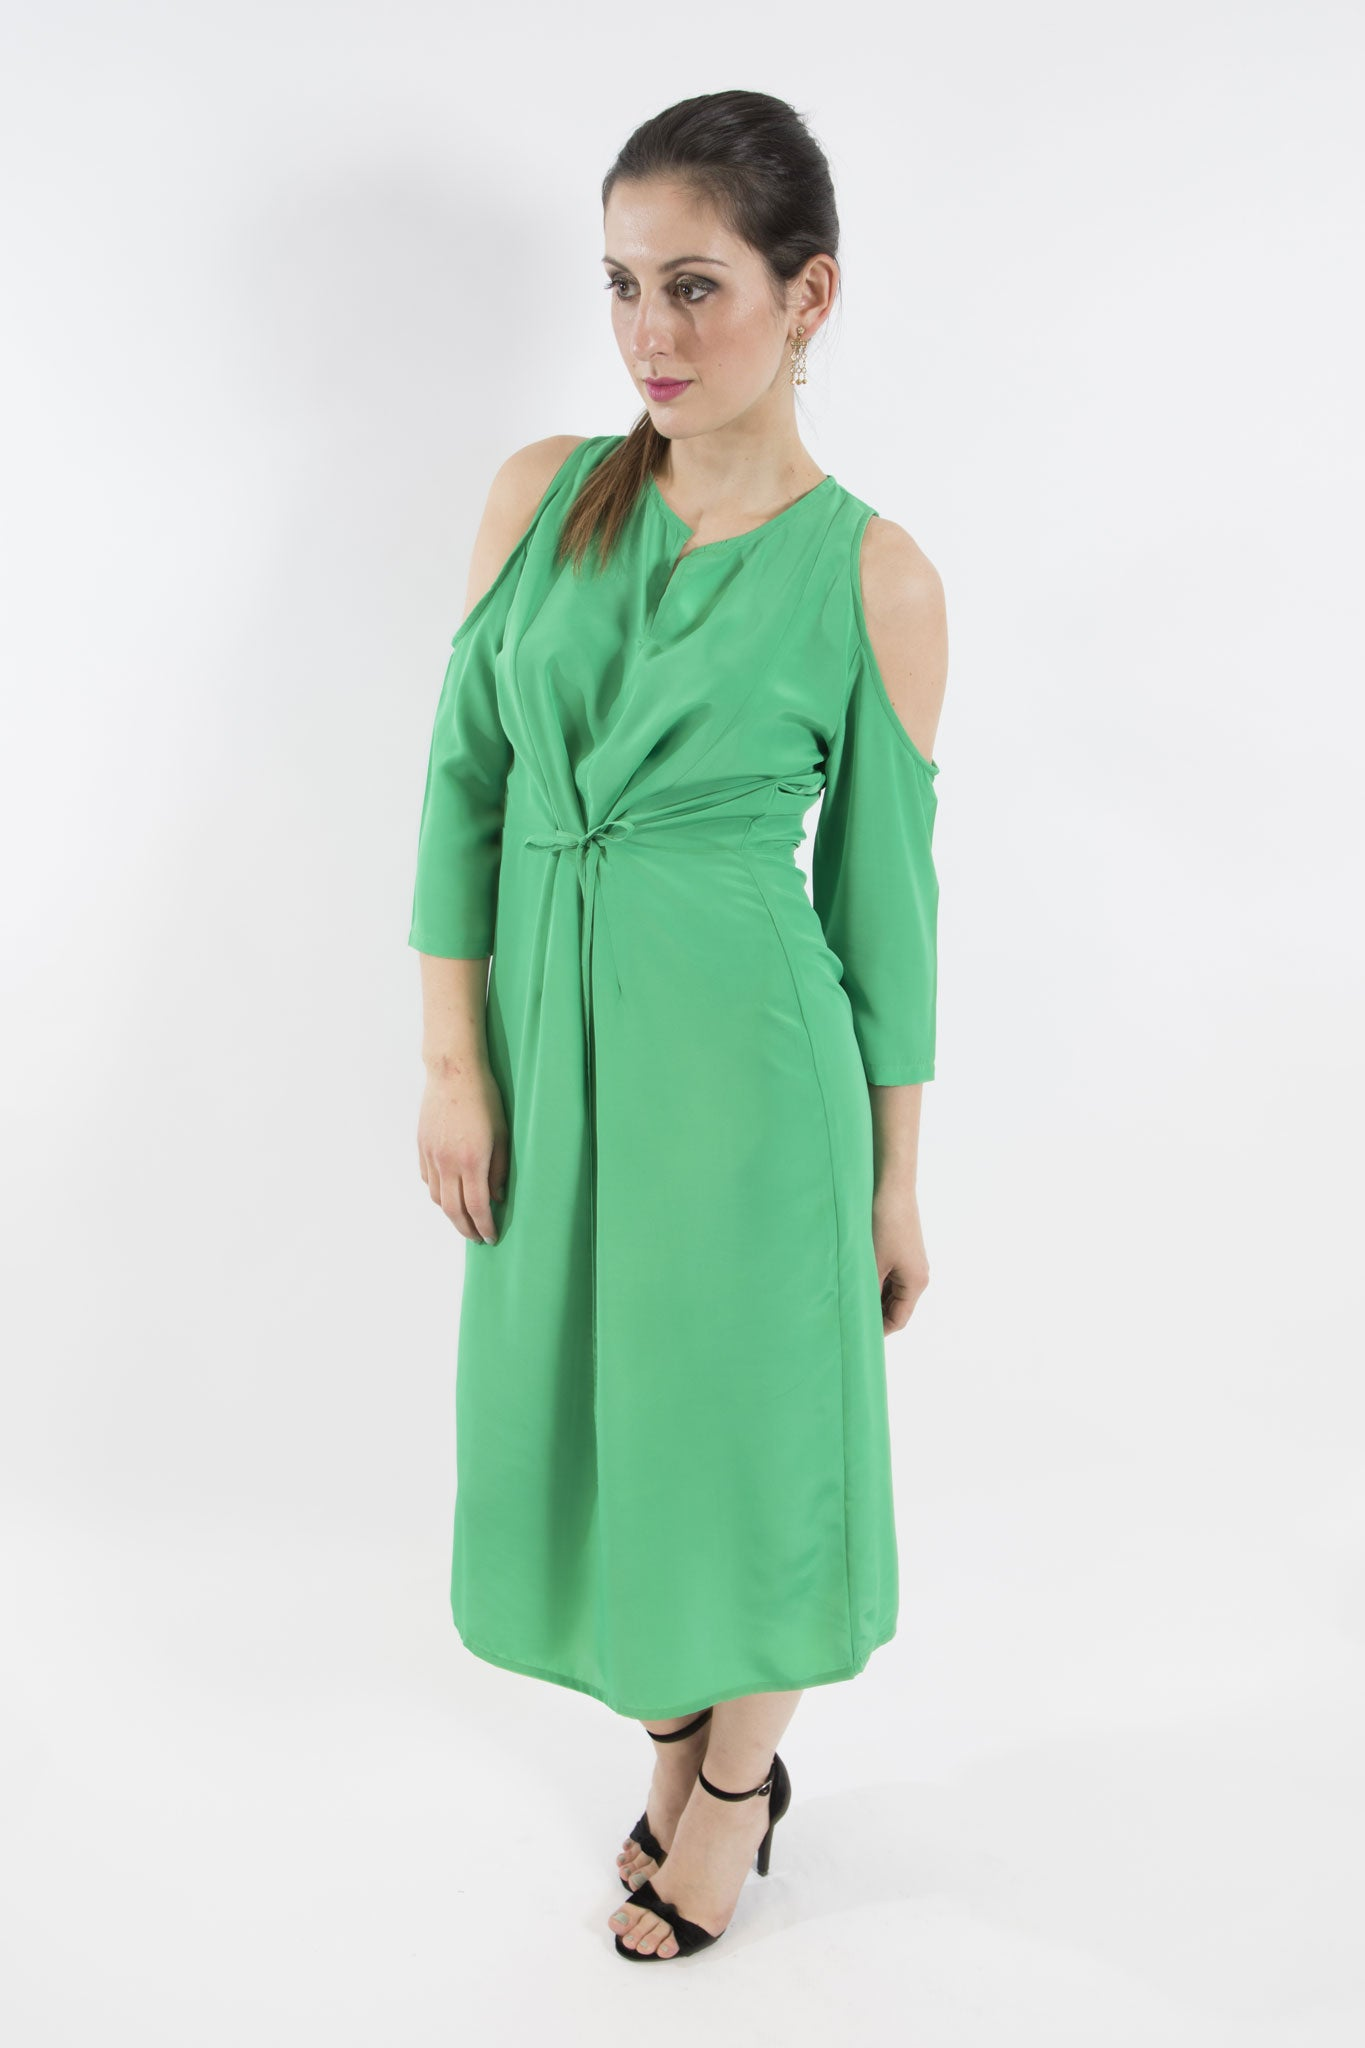 Sketch London emerald green dress cold shoulder date night evening cocktail ethical sustainable women